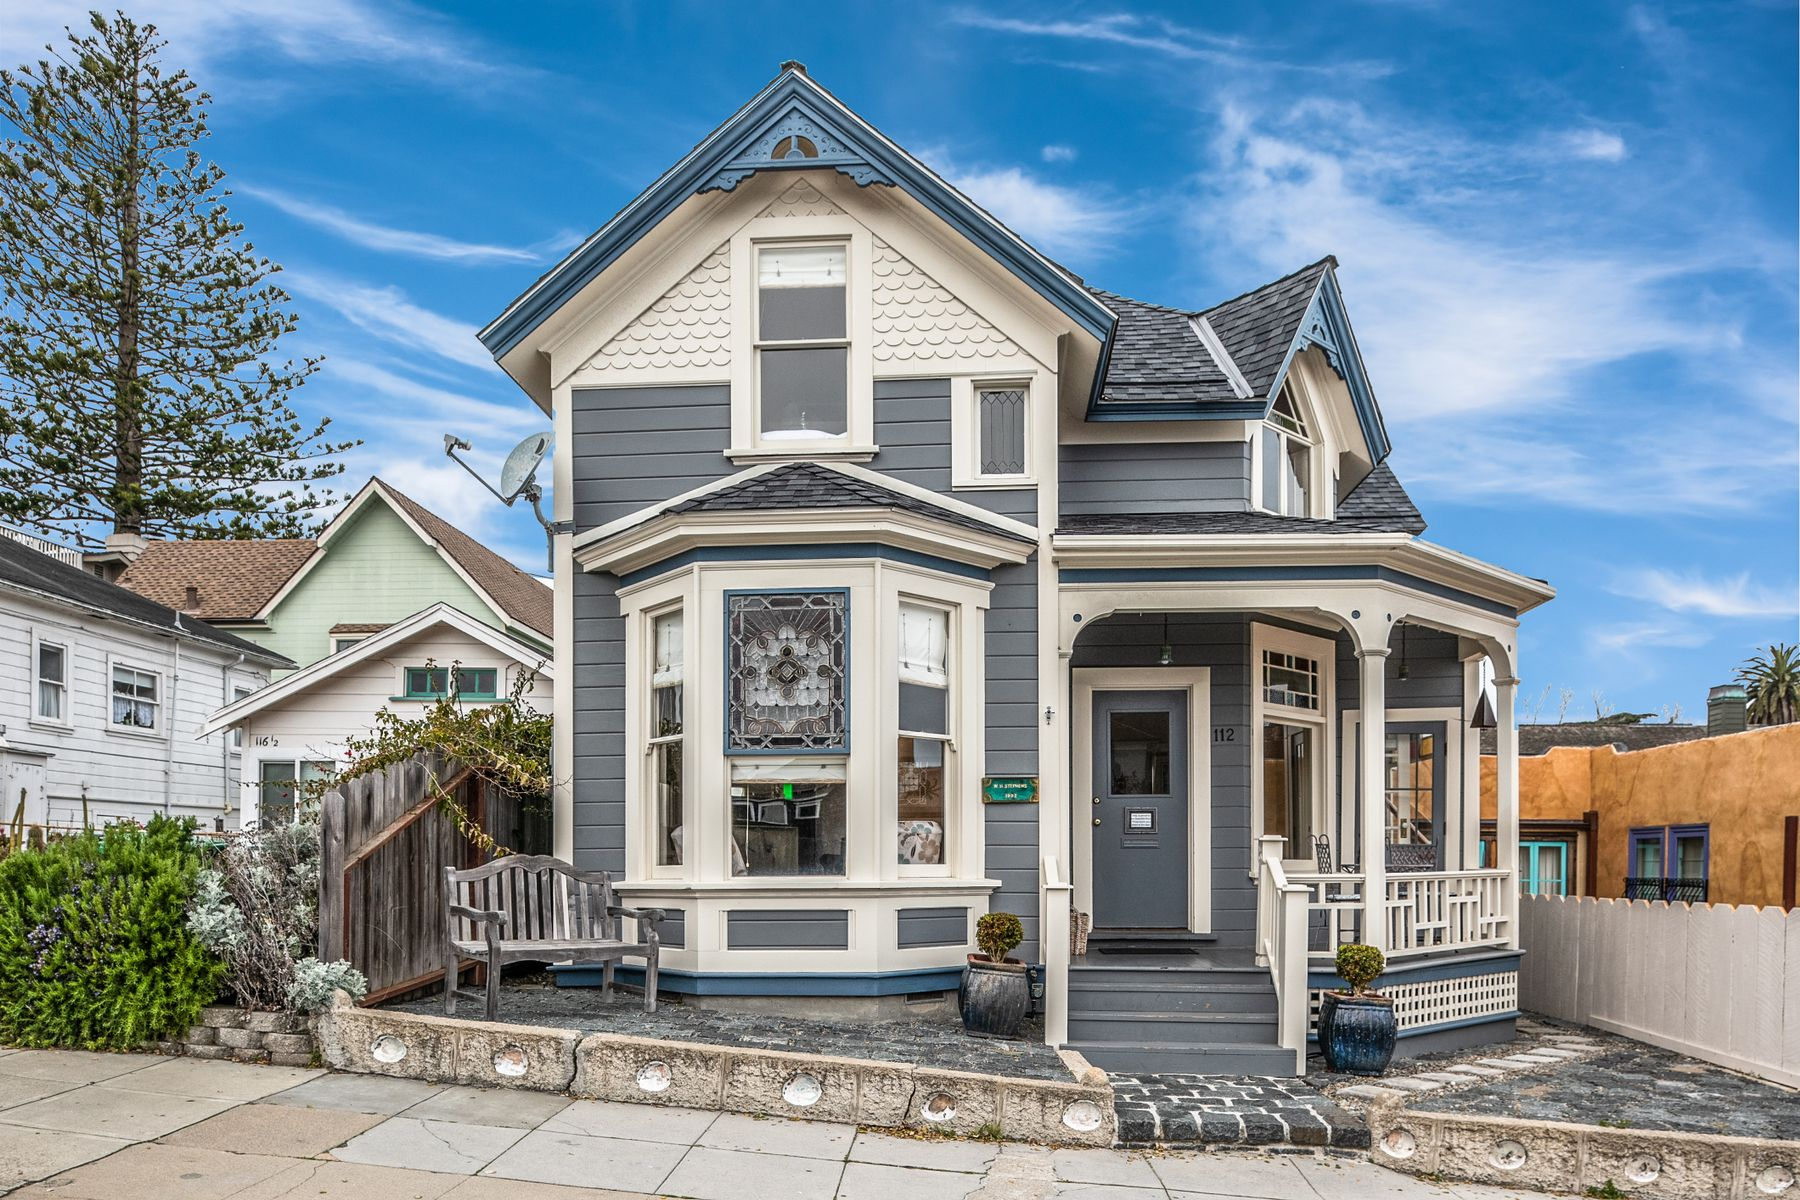 Single Family Homes for Sale at Pacific Grove Bay View Beach House 112 Forest Avenue Pacific Grove, California 93950 United States